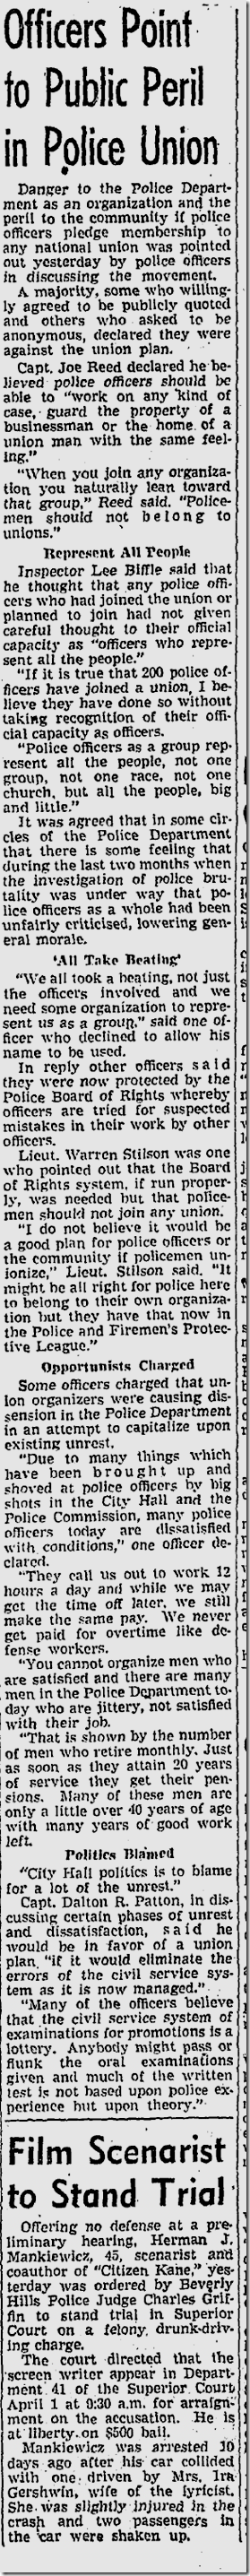 March 20, 1943, Police Union